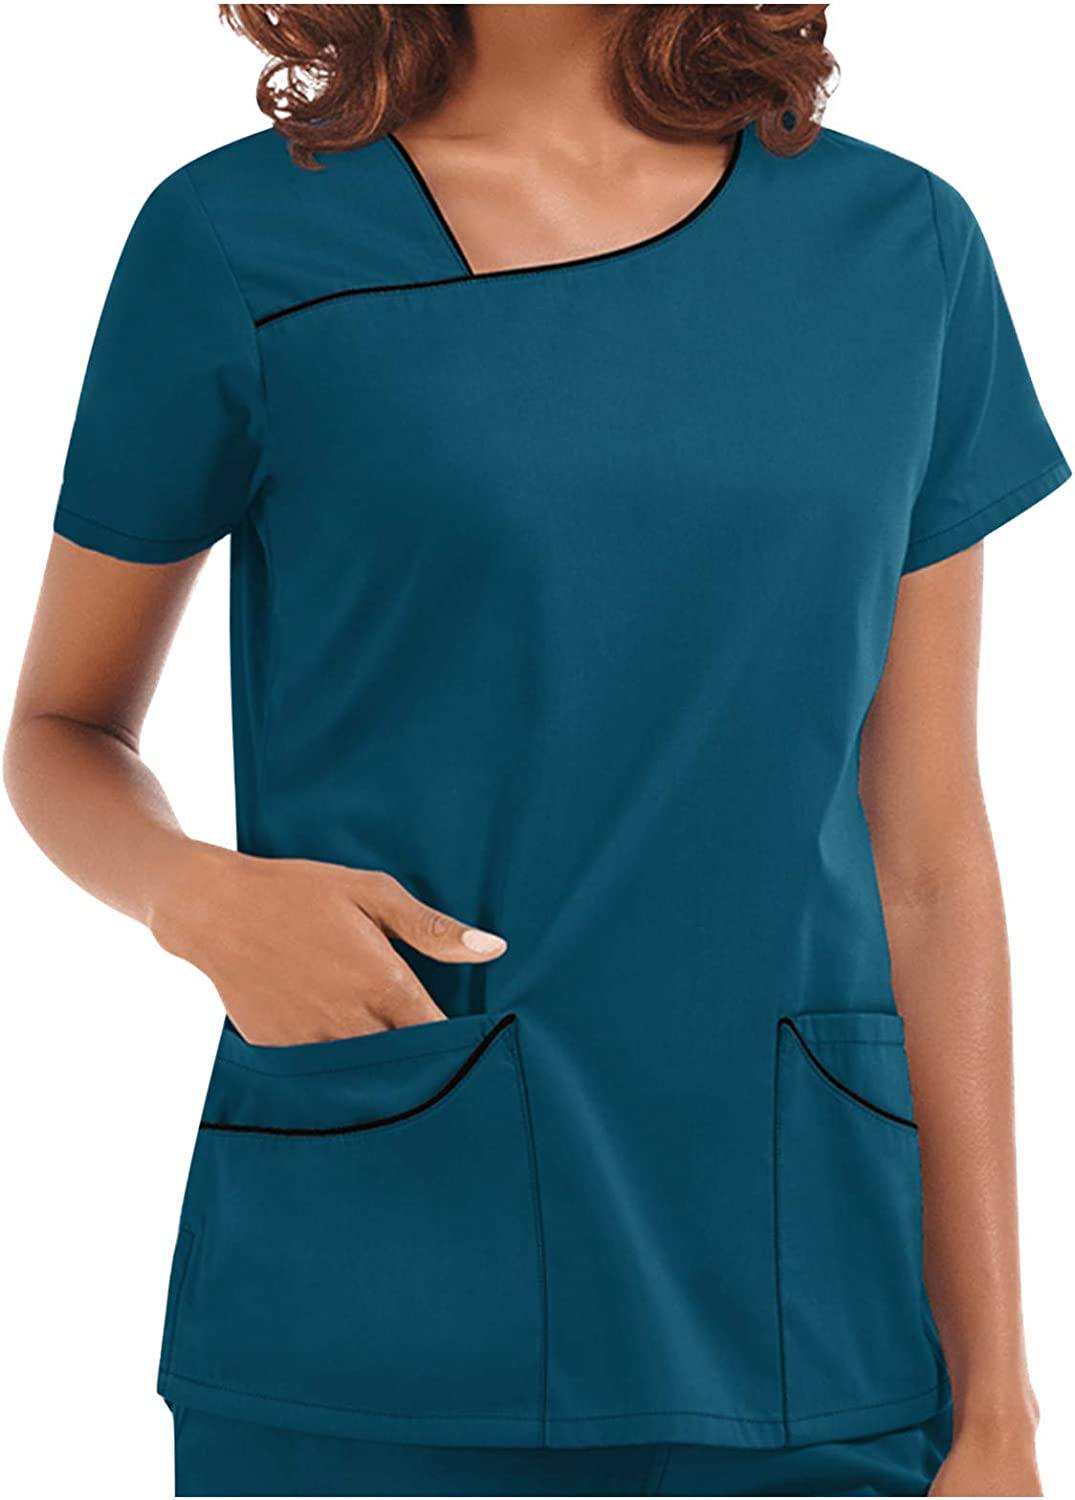 Sinzelimin Women's Nurse Shirts Fashion Solid Short Sleeve Working Uniform Care Workers Blouse T-Shirt with Pocket